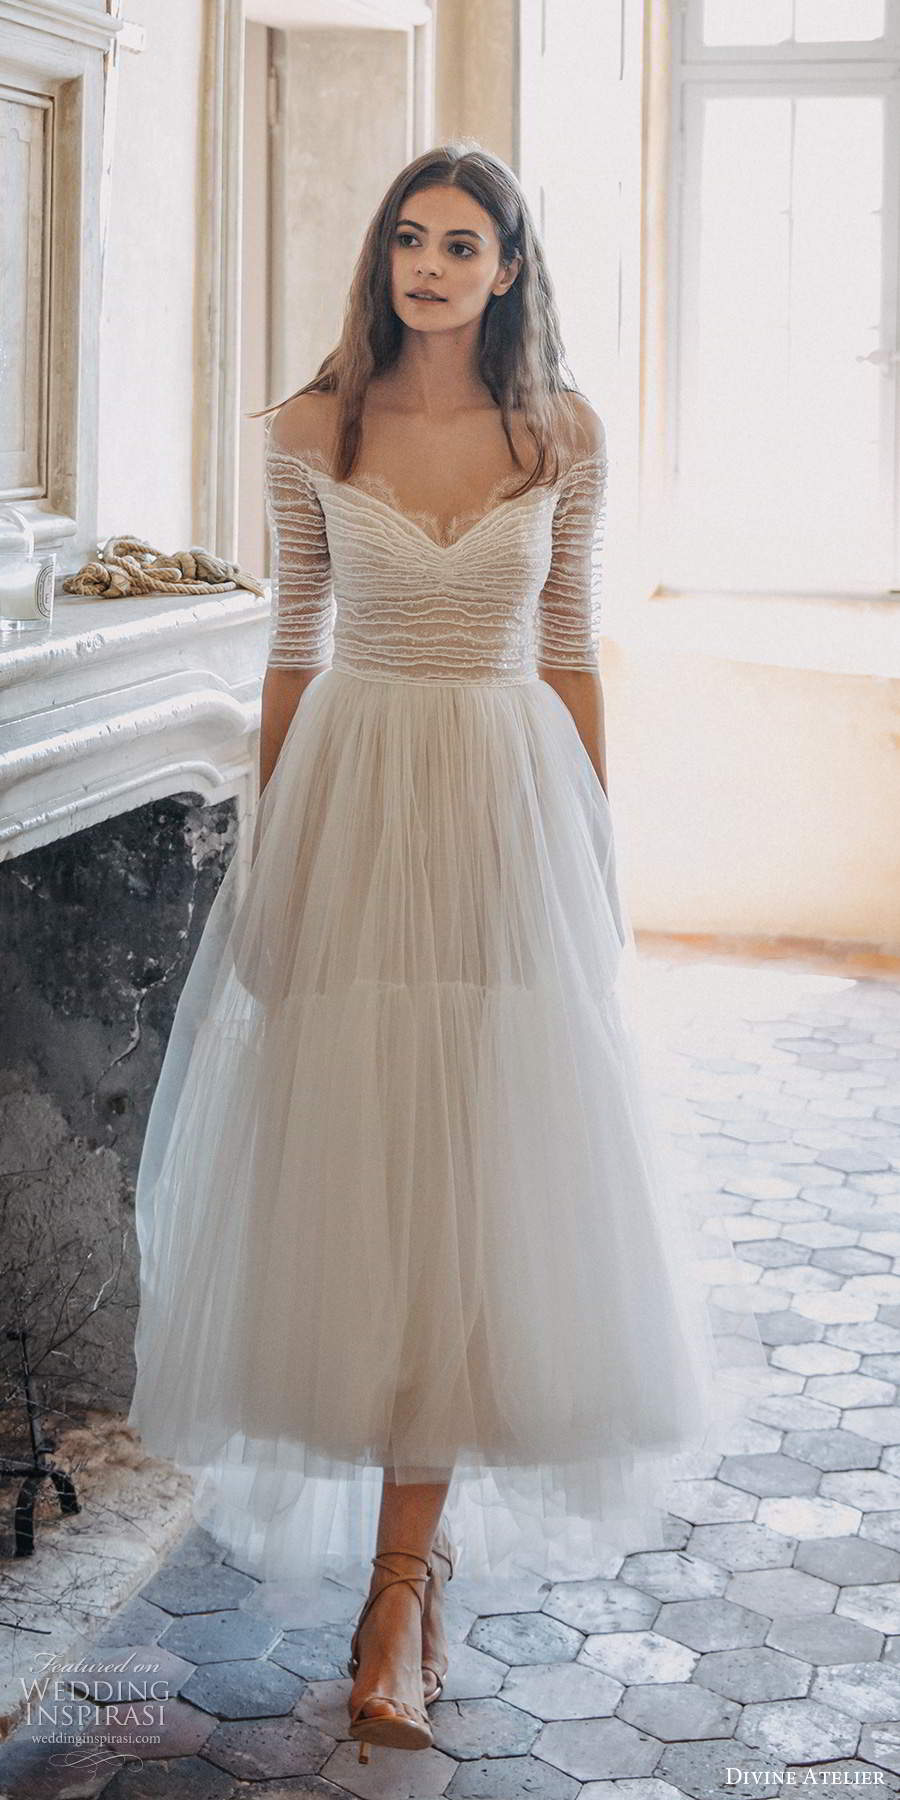 divine atelier 2020 bridal sheer half sleeves off shoulder sweetheart neckline ruched bodice a line tea length high low wedding dress (15) mv